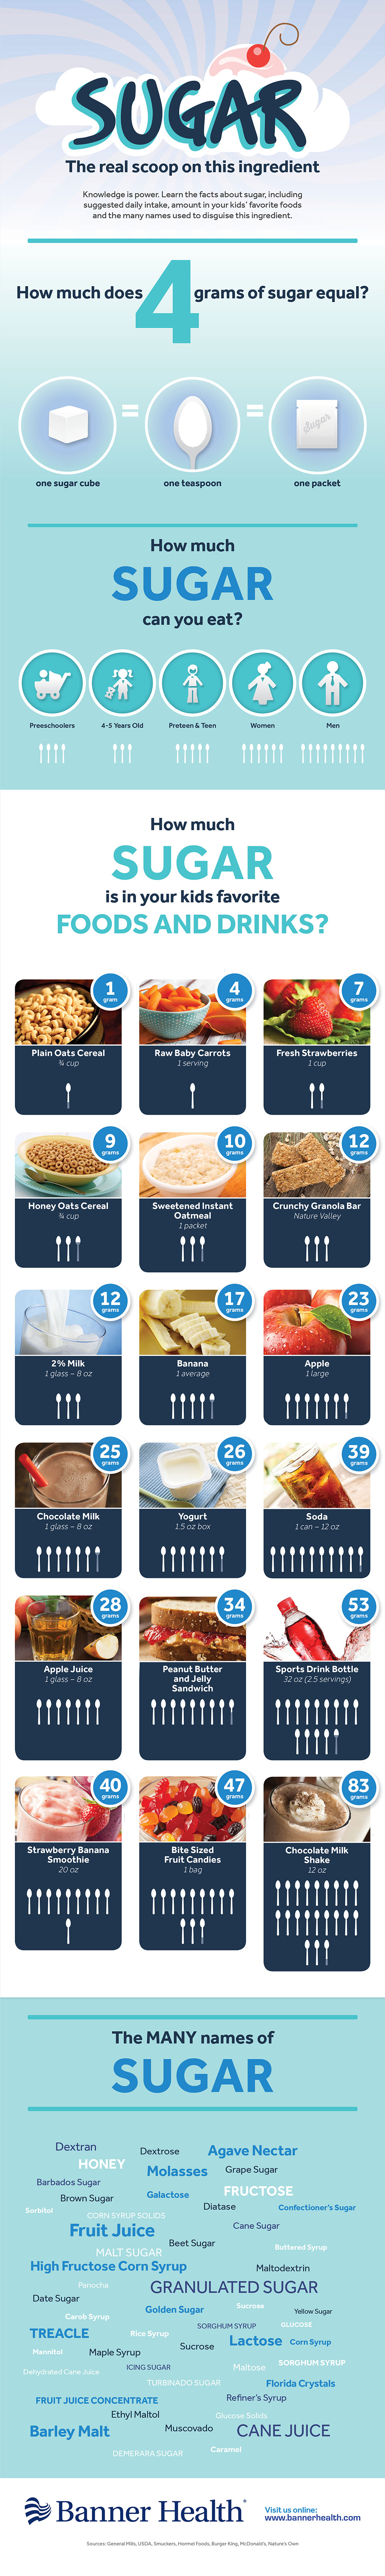 Sugar-Content-Infographic_ENG_L1